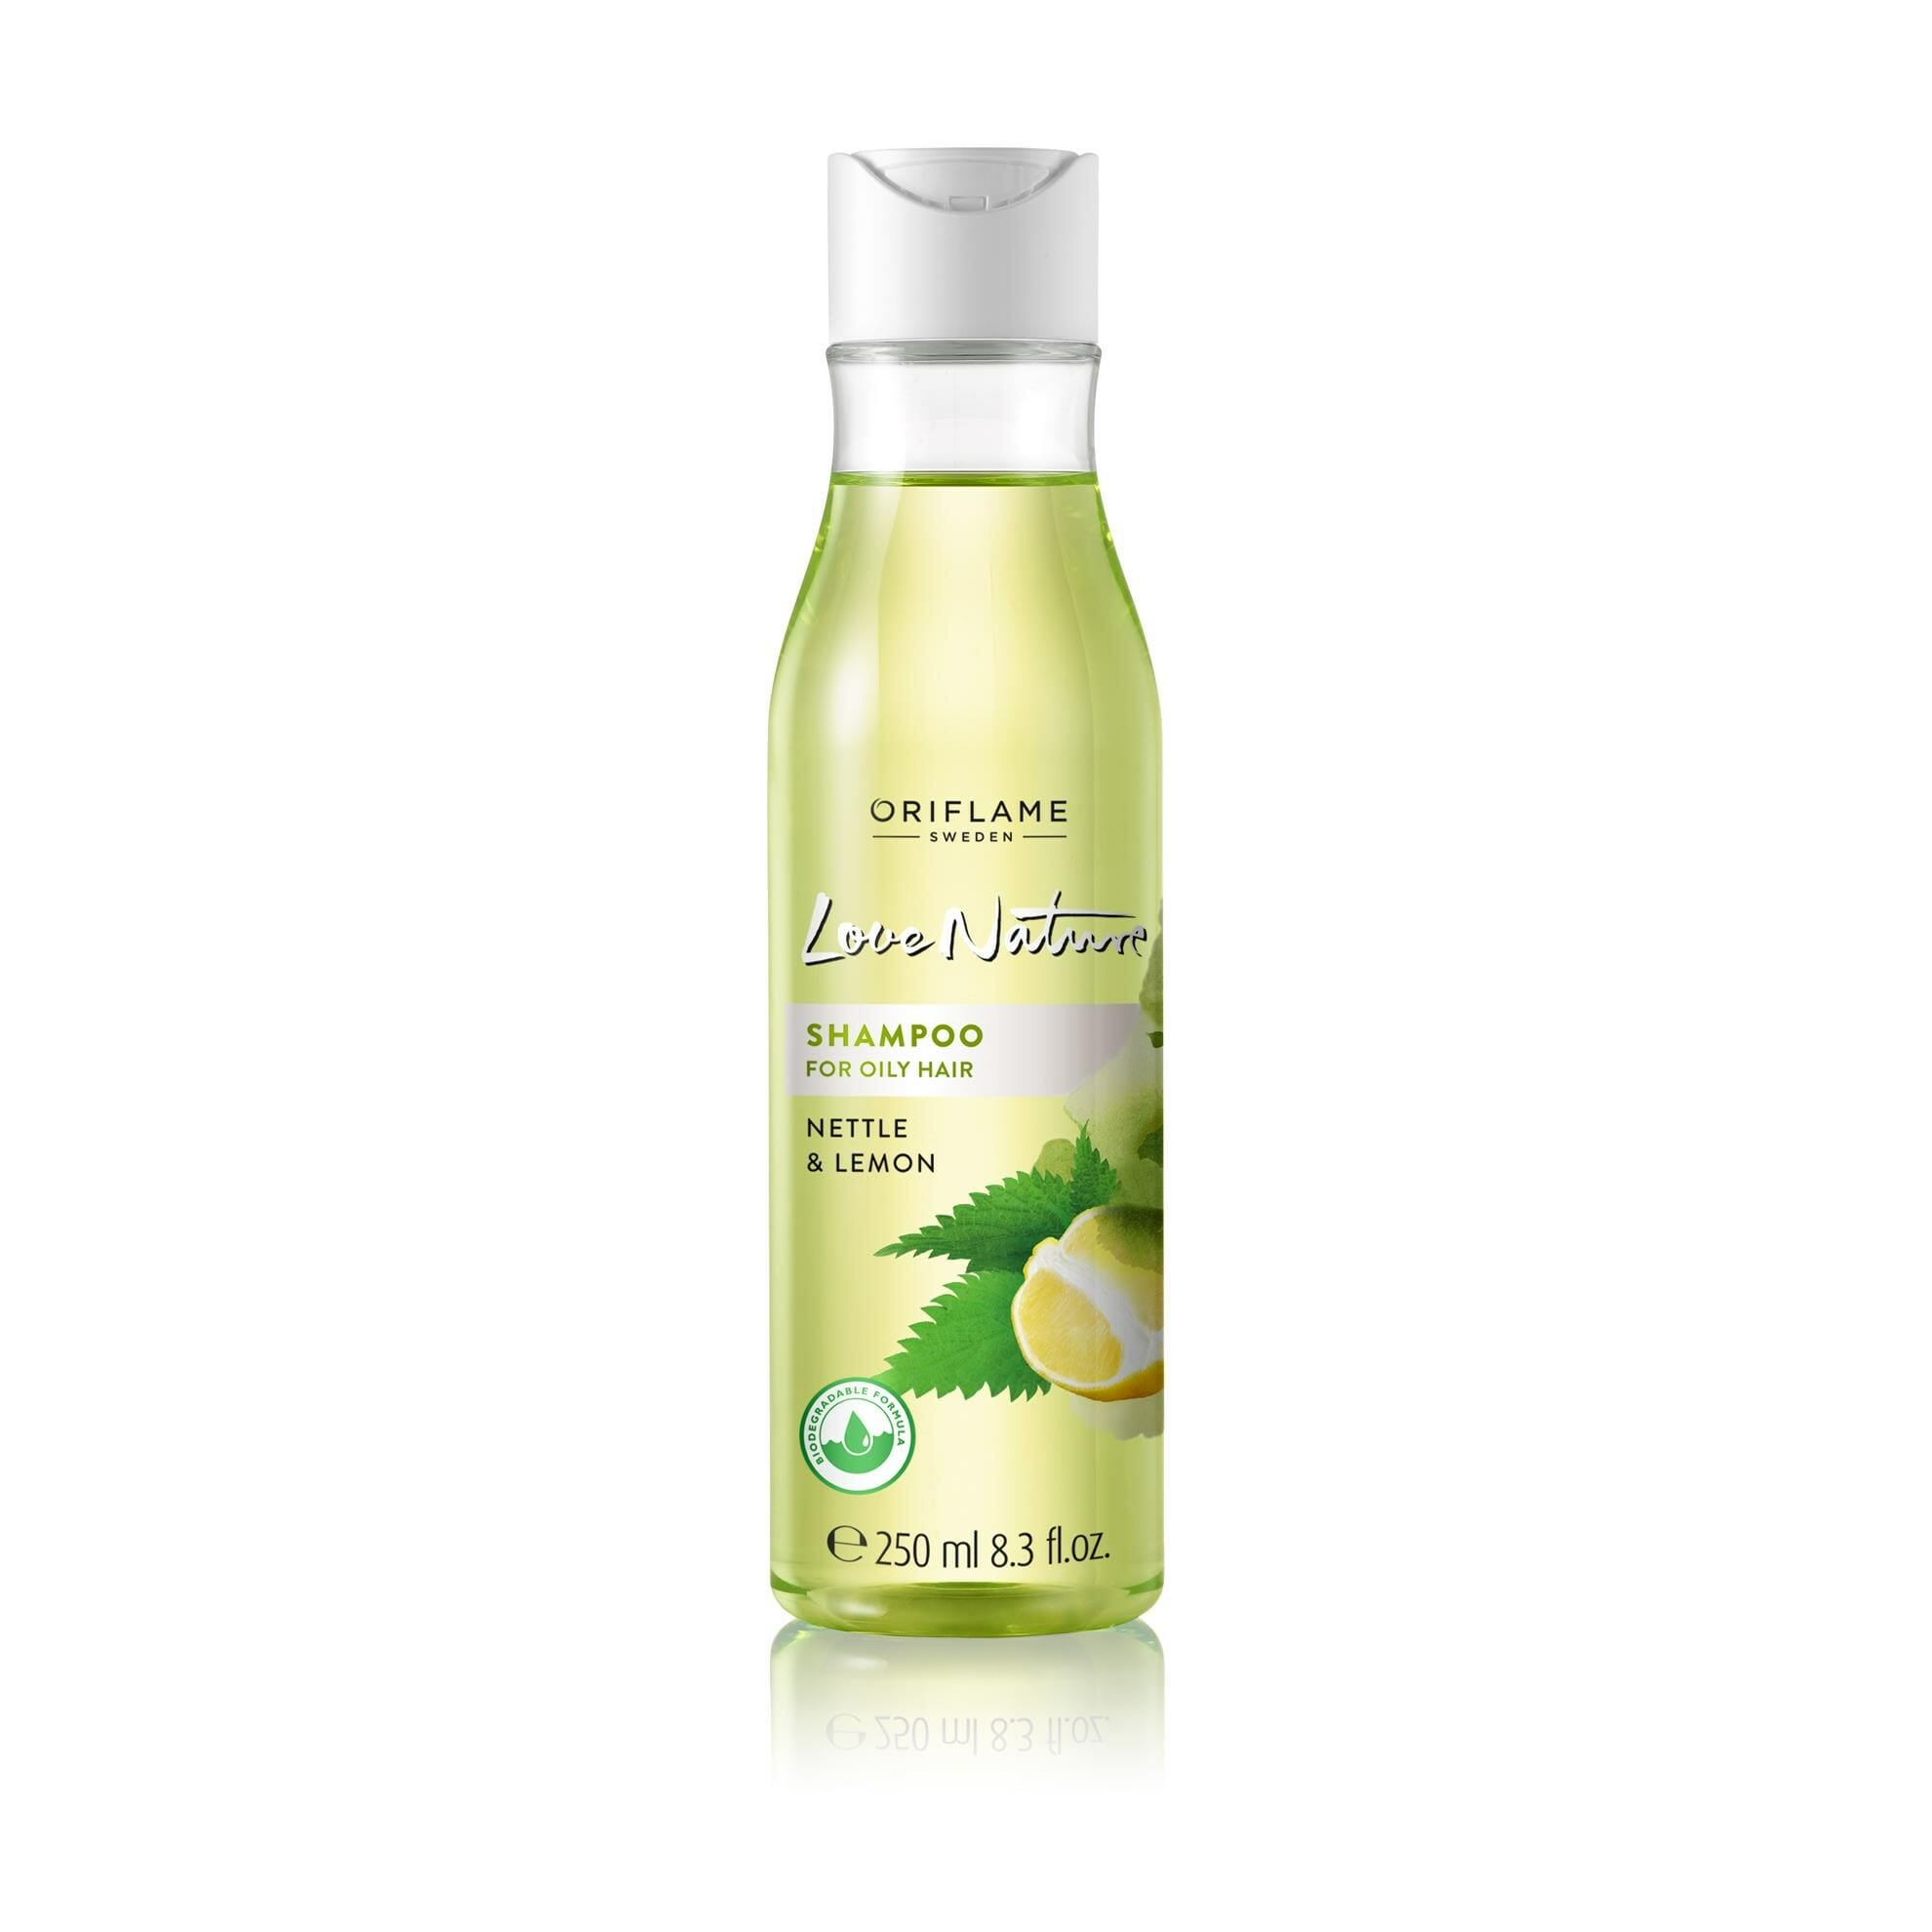 Oriflame Love Nature Shampoo For Oily Hair Nettle & Lemon 250ml - Best Shampoo For Oily Hair In Pakistan